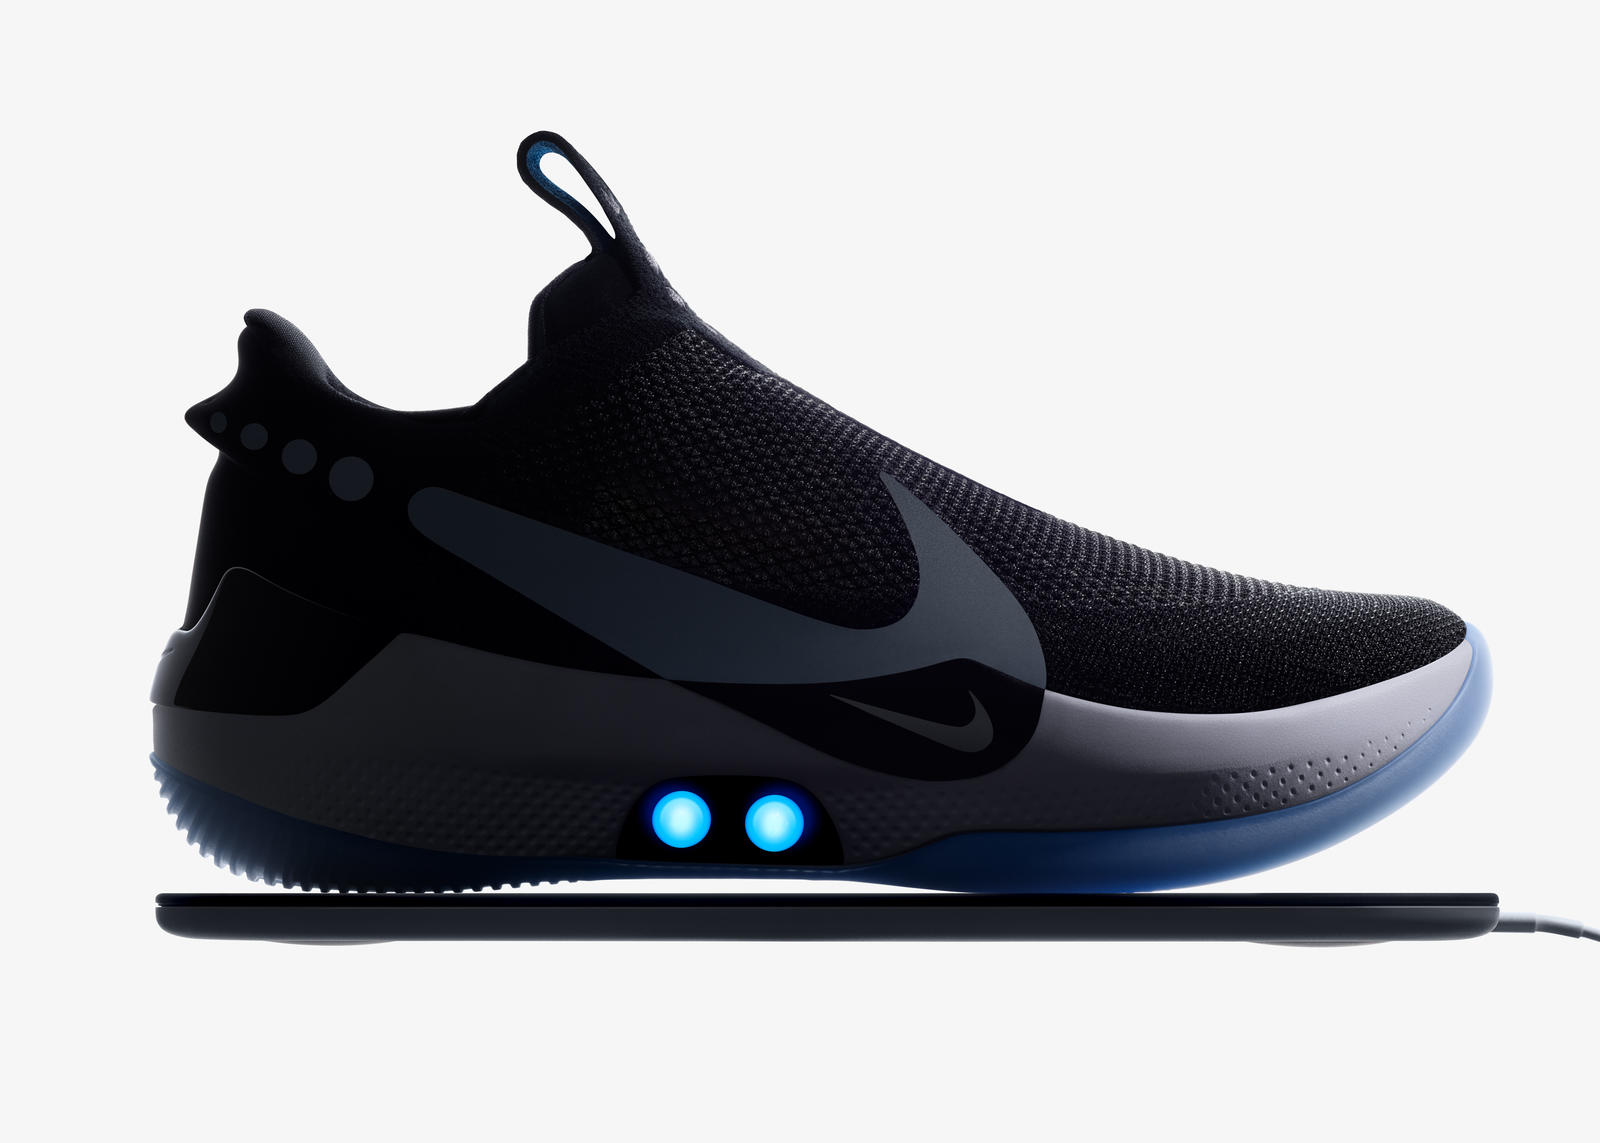 575c2c34 Introducing the Nike Adapt BB - Nike News